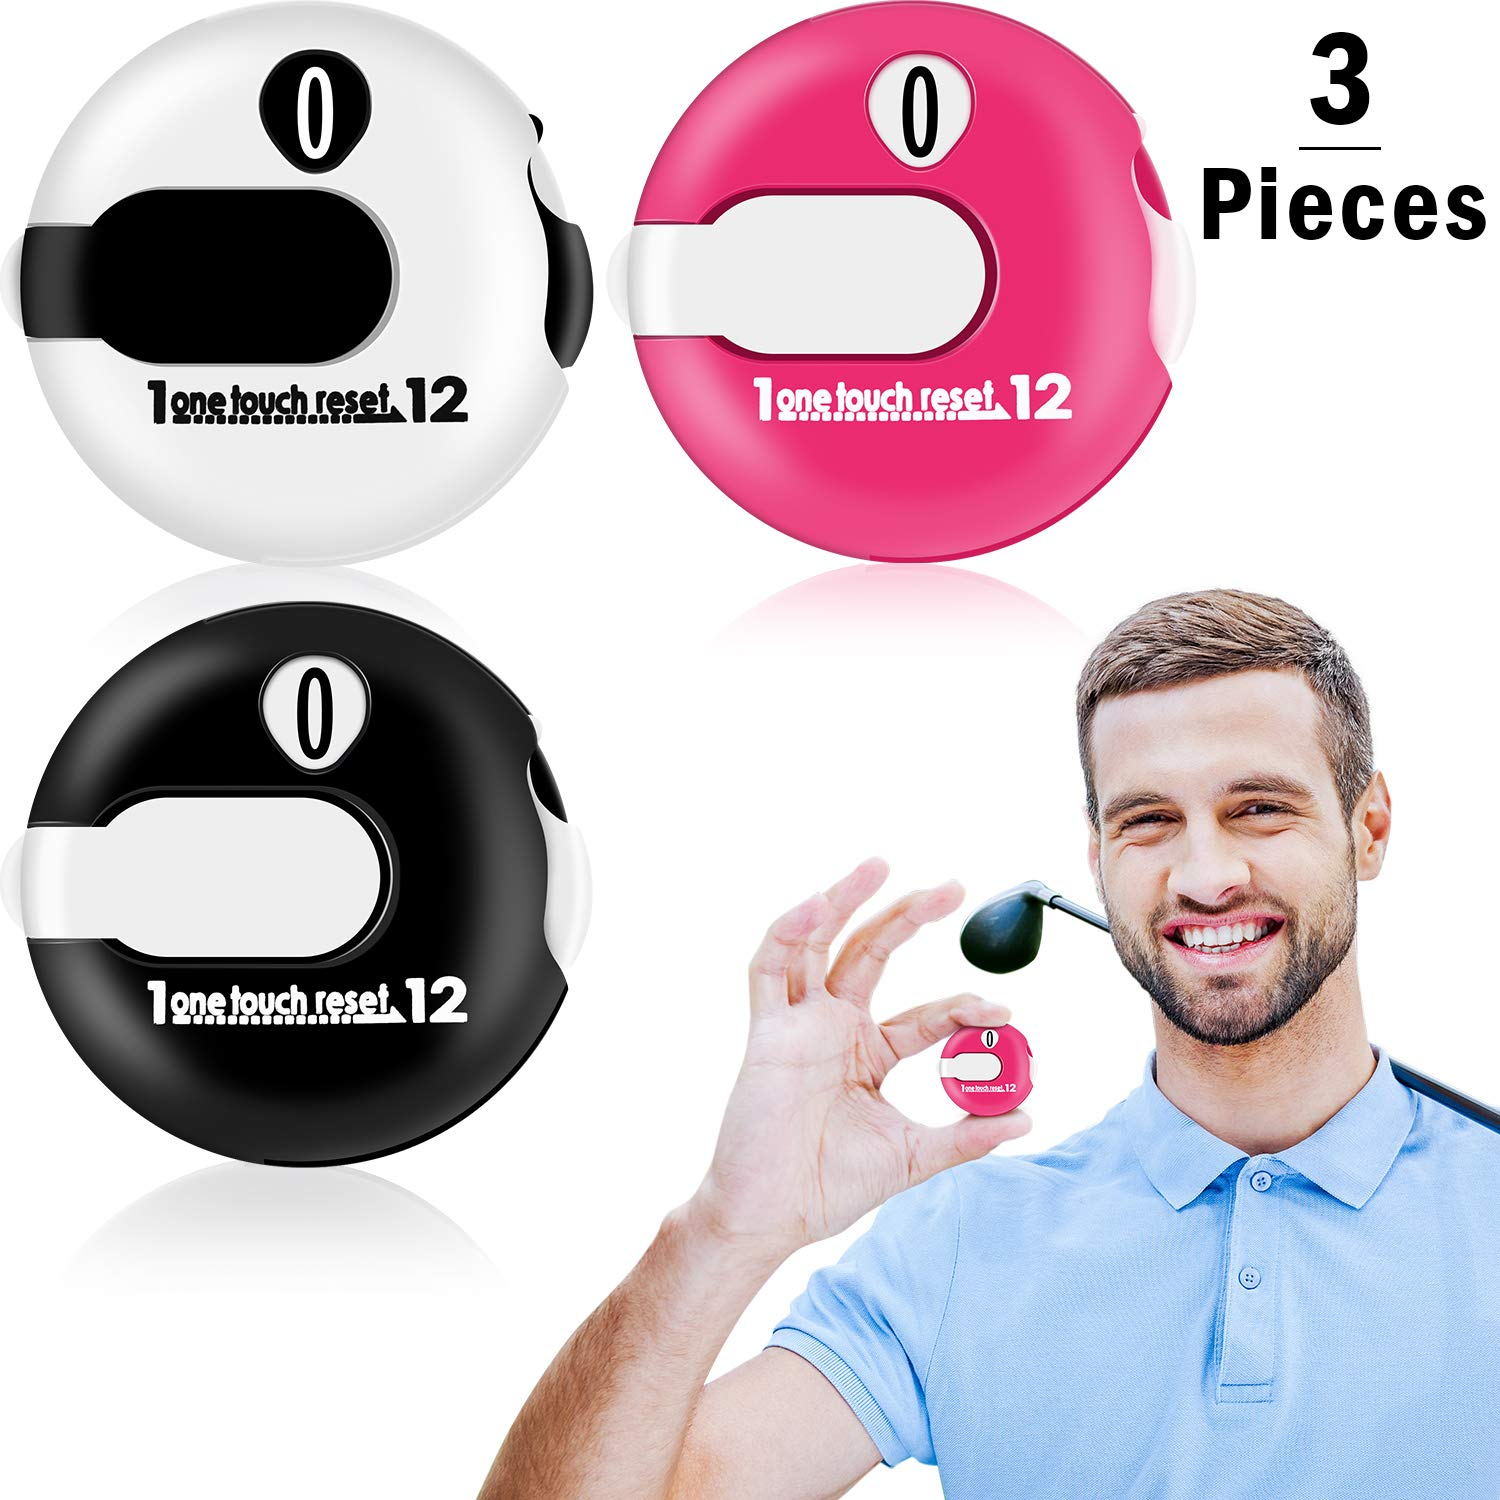 Frienda Golf Score Counter Mini Golf Stroke Counter with One Touch Reset and Simple Attachment to Scorekeeper Glove in, 3 Pieces by Frienda